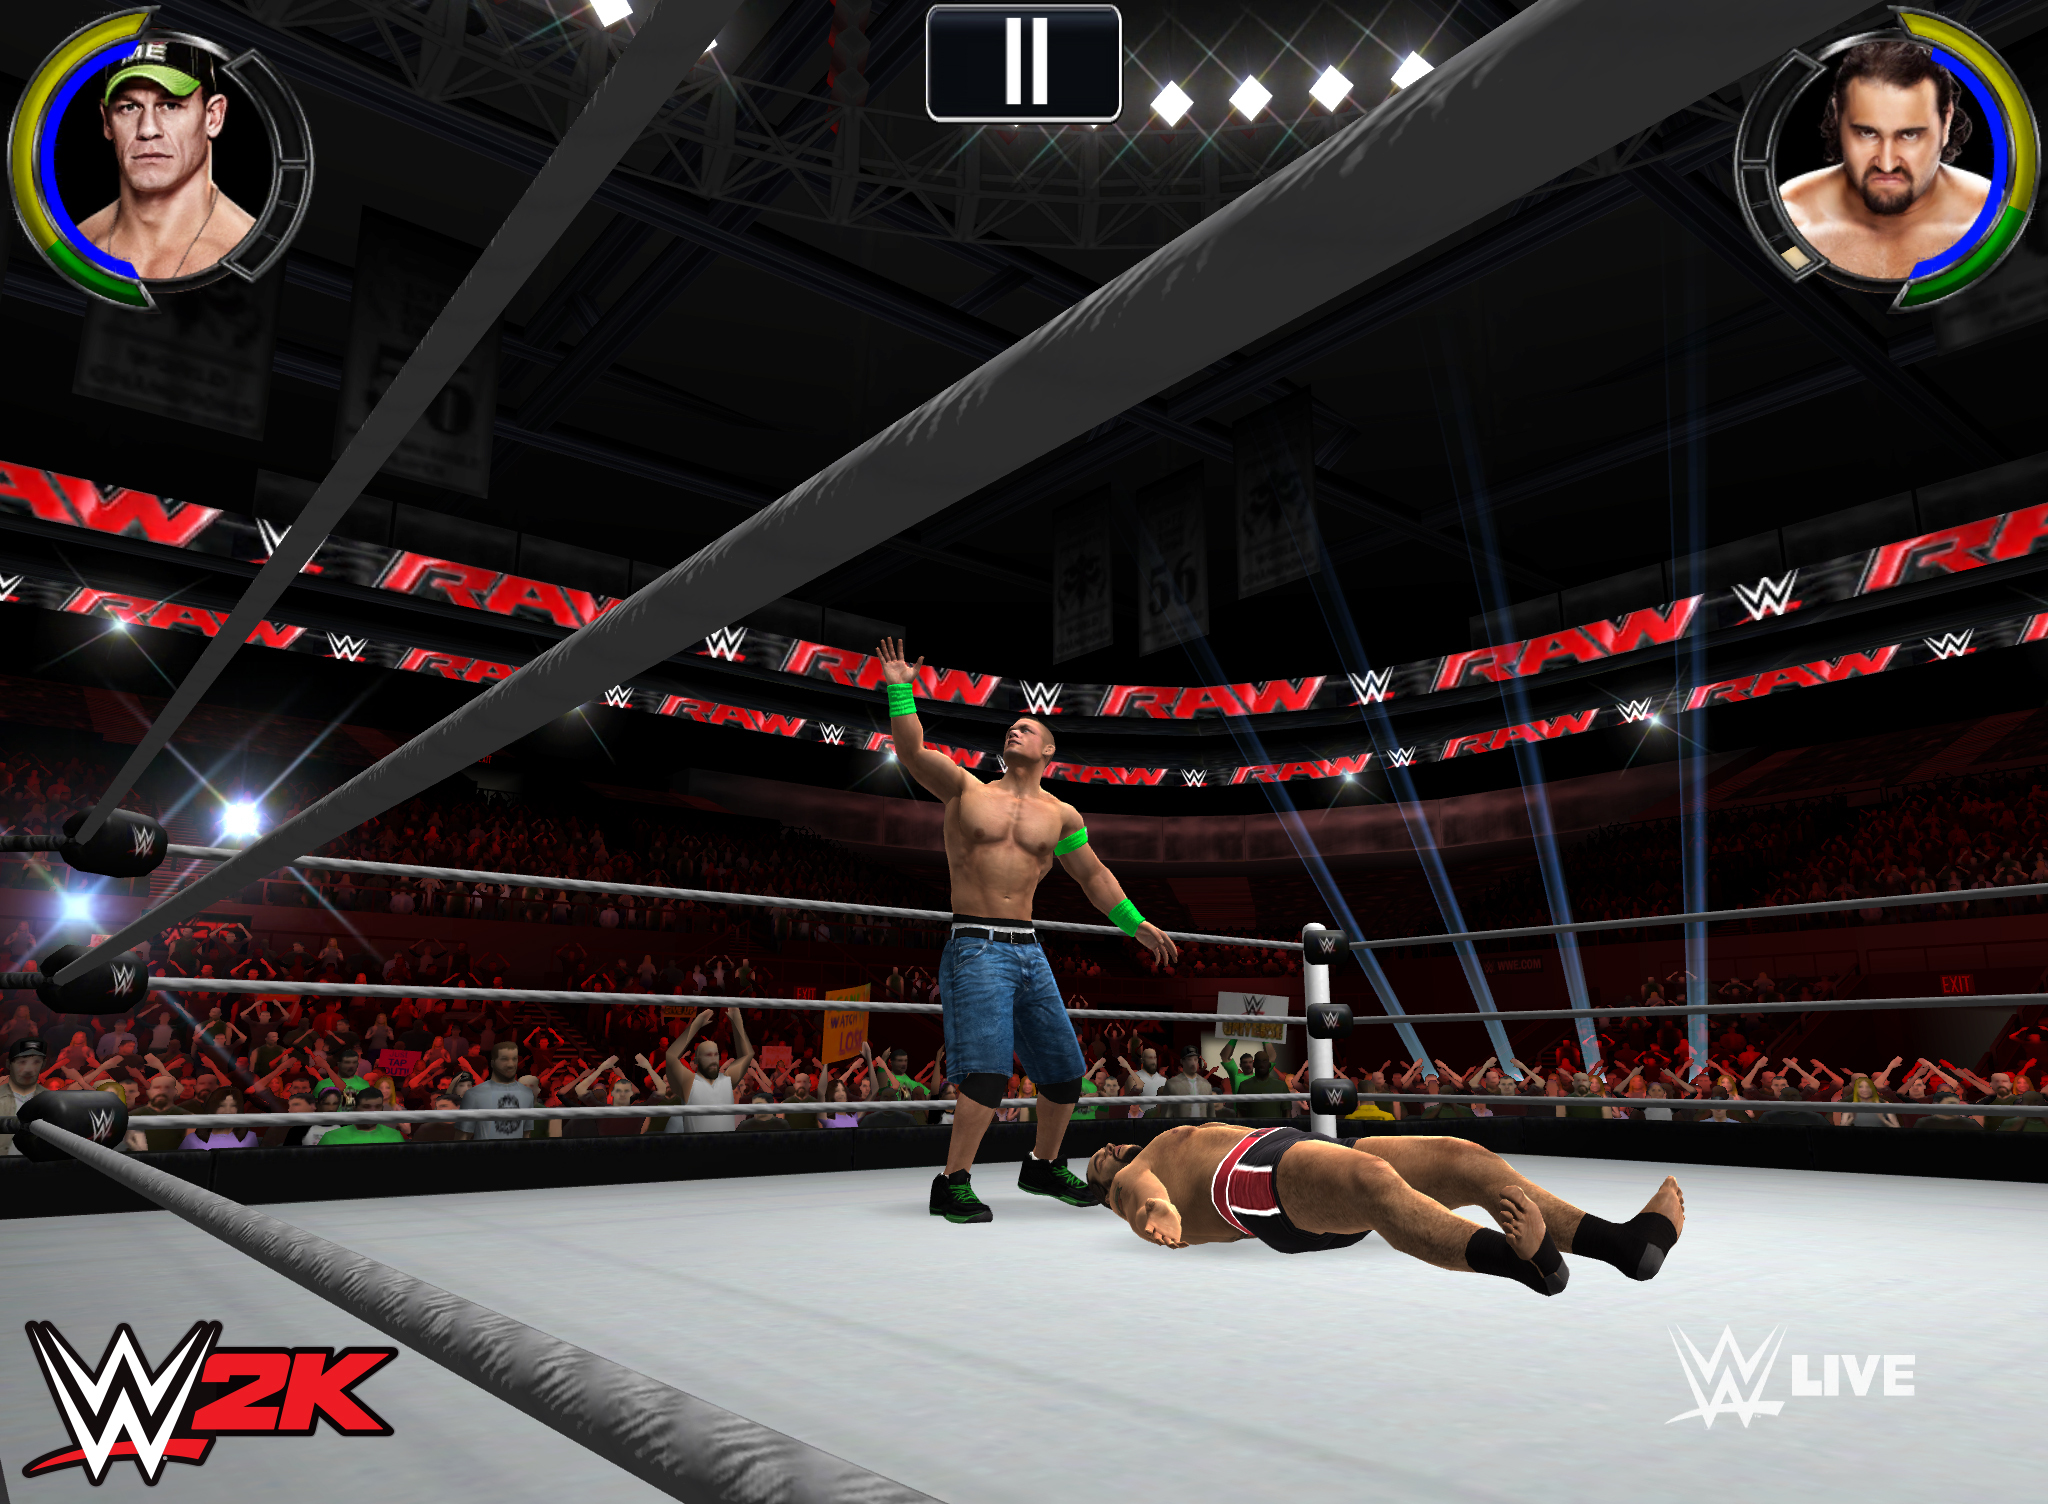 2K Announces Development of First WWE Simulation Video Game